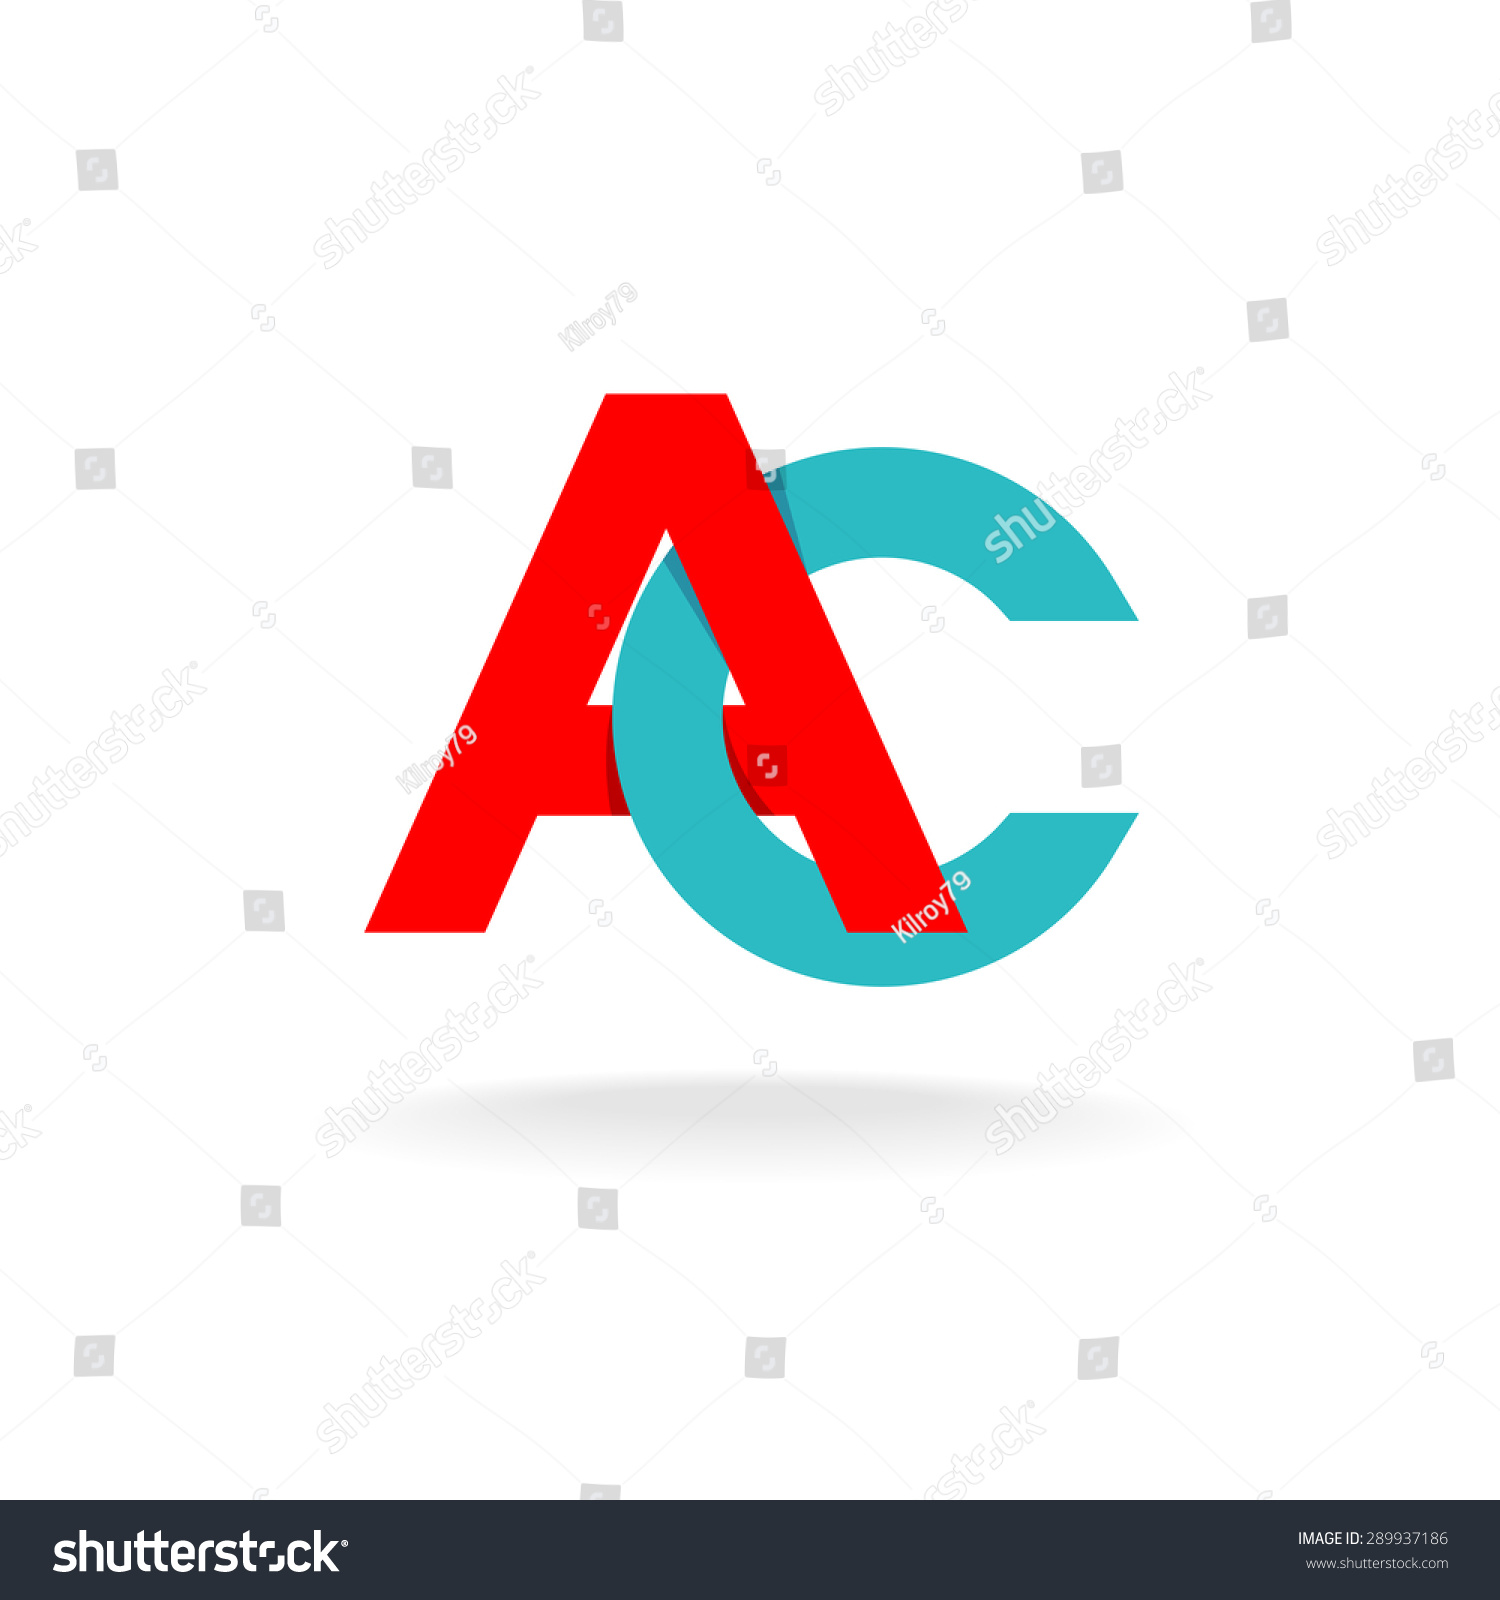 c letters monogram logo color flat stock vector 289937186 shutterstock. Black Bedroom Furniture Sets. Home Design Ideas